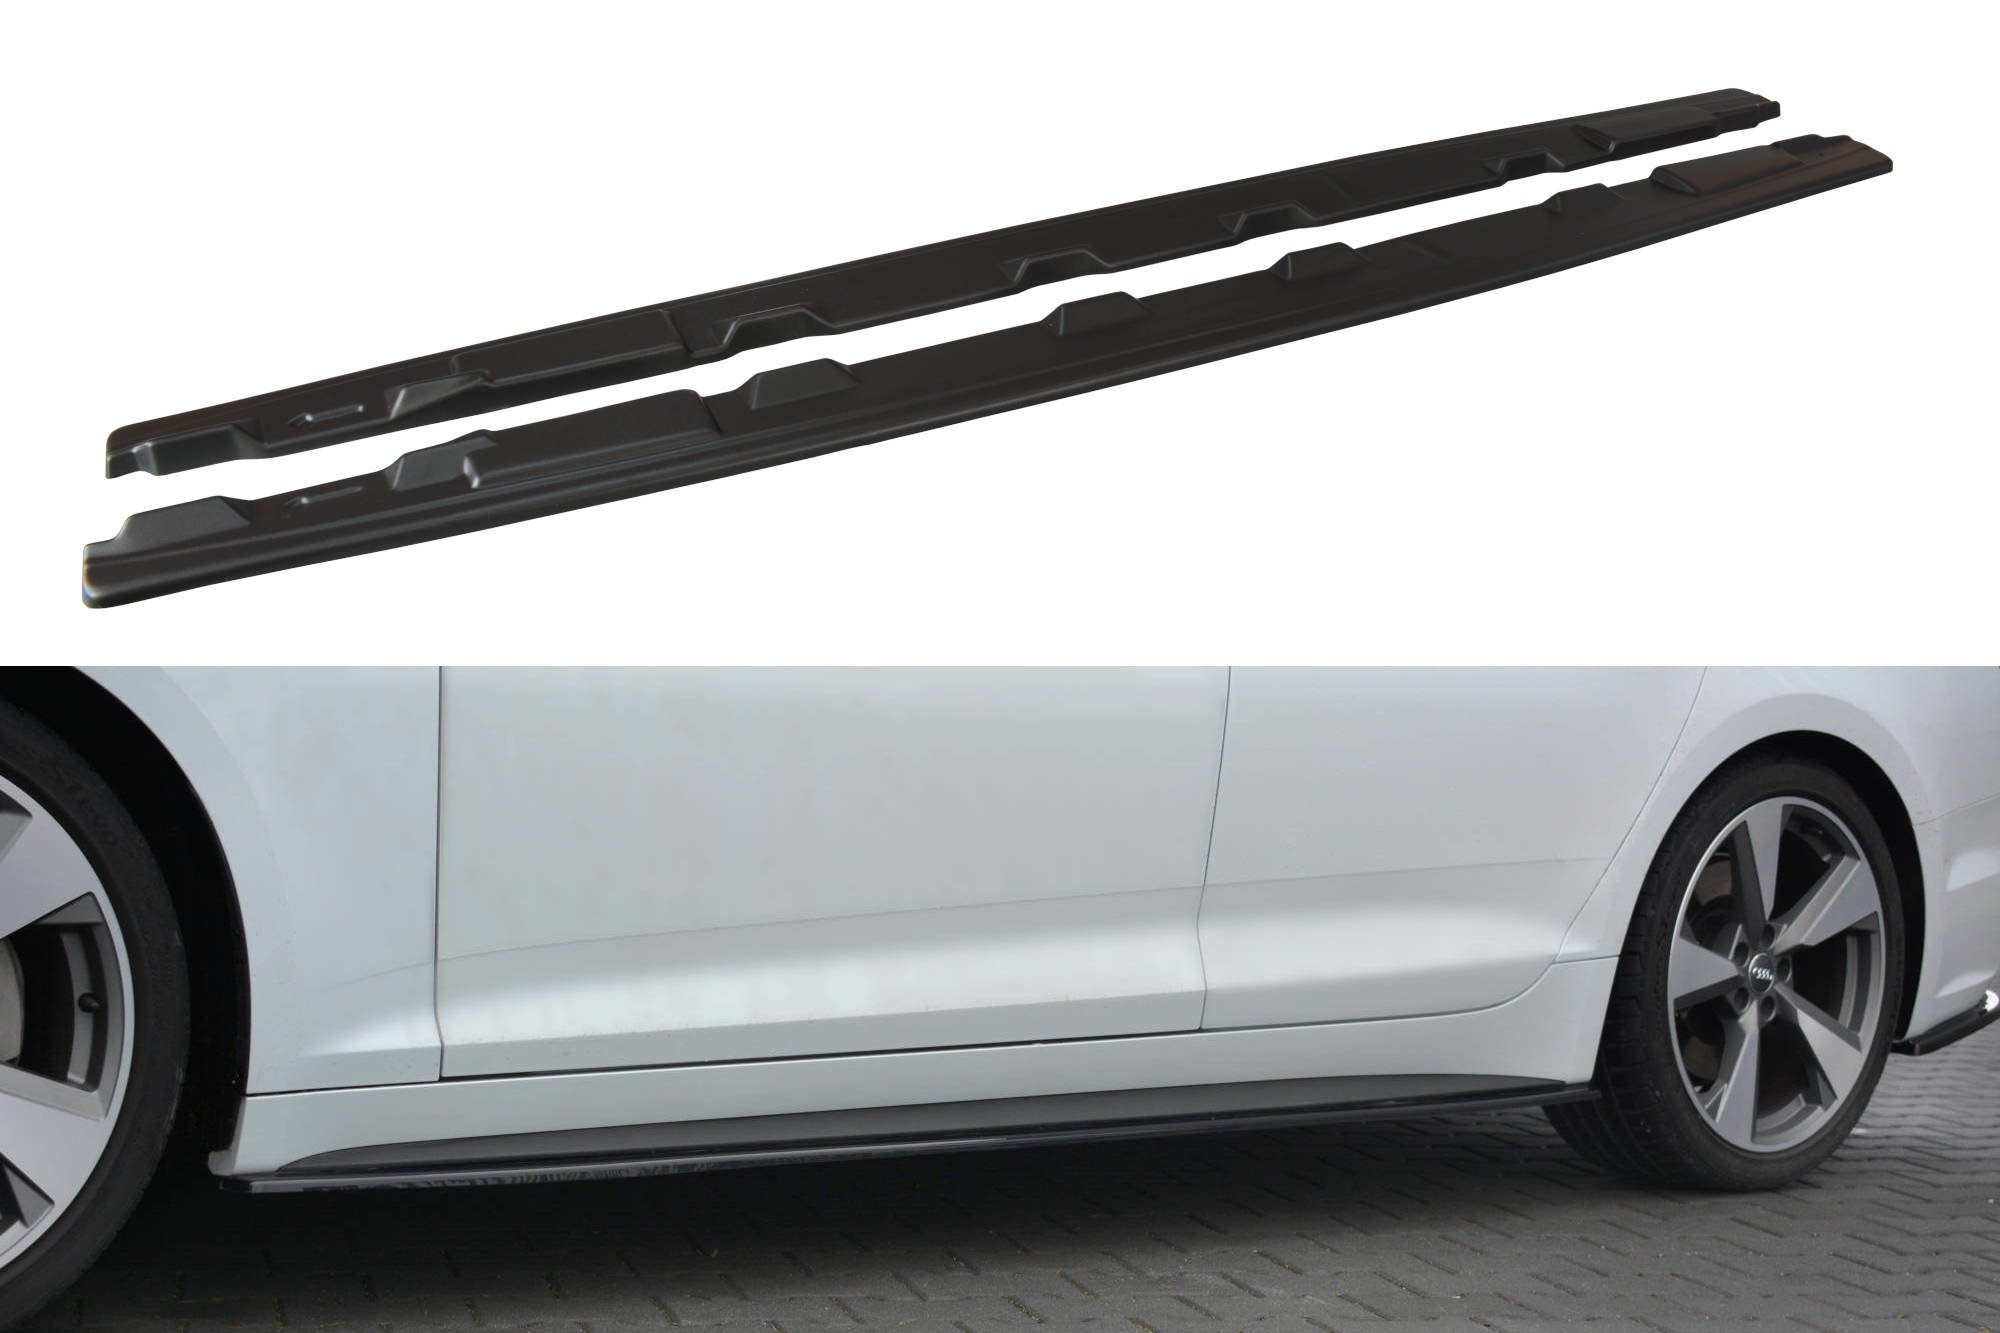 Side Skirts Diffusers Audi S5 A5 S Line F5 Sportback Our Offer Audi A5 S5 Rs5 A5 S Line F5 2017 2019 Sportback Our Offer